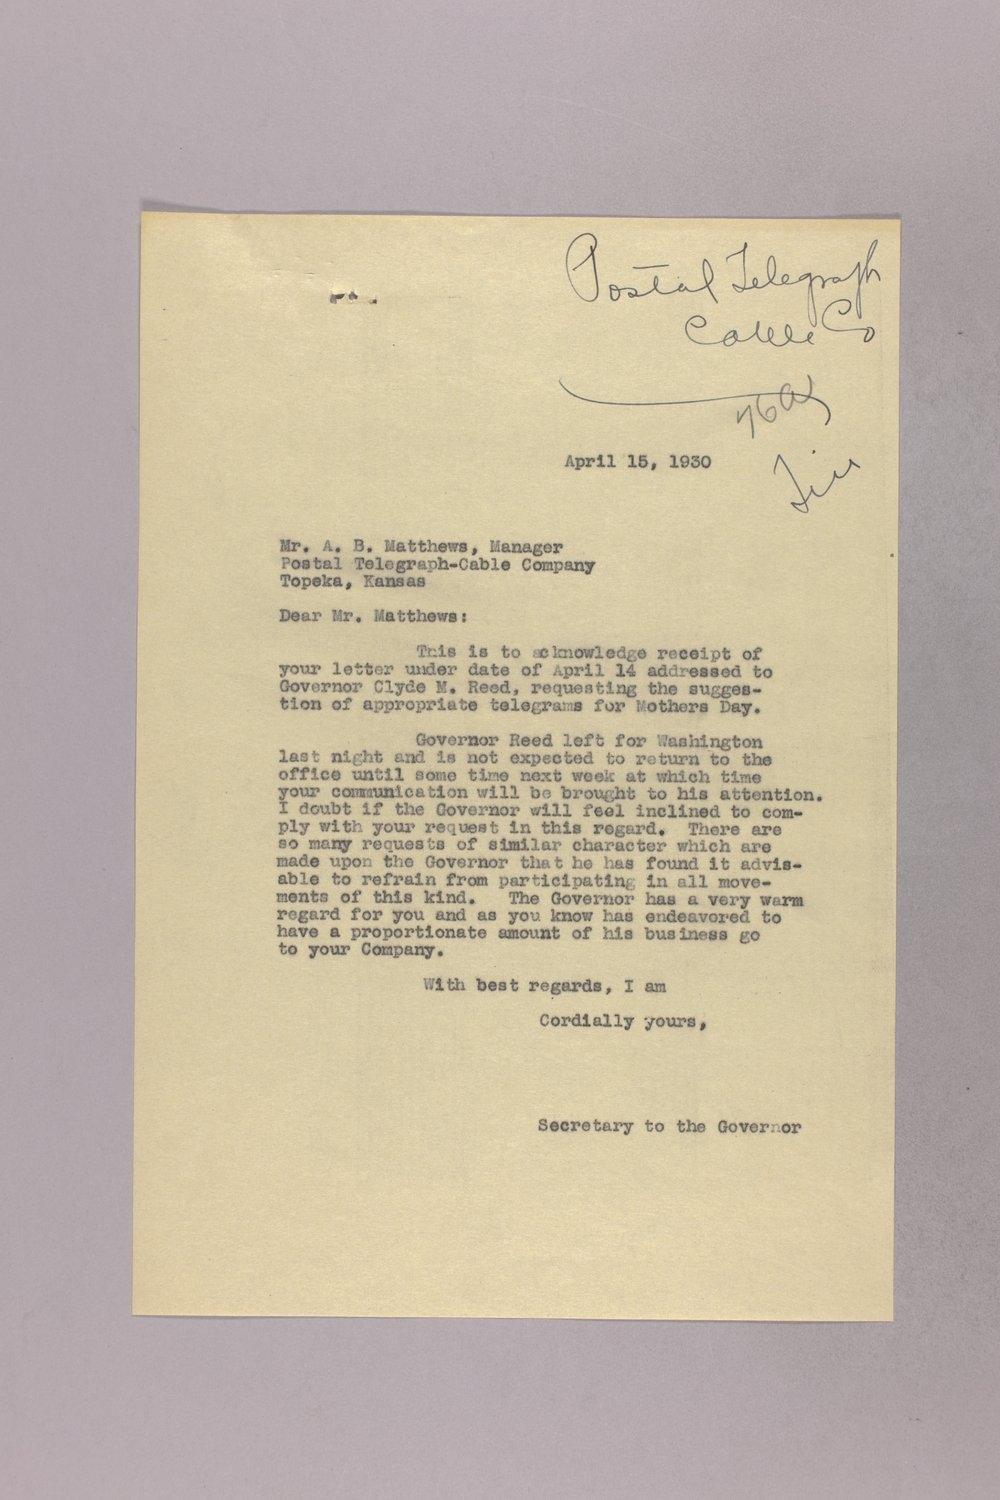 Governor Clyde M. Reed correspondence, United States Postal Service - 8